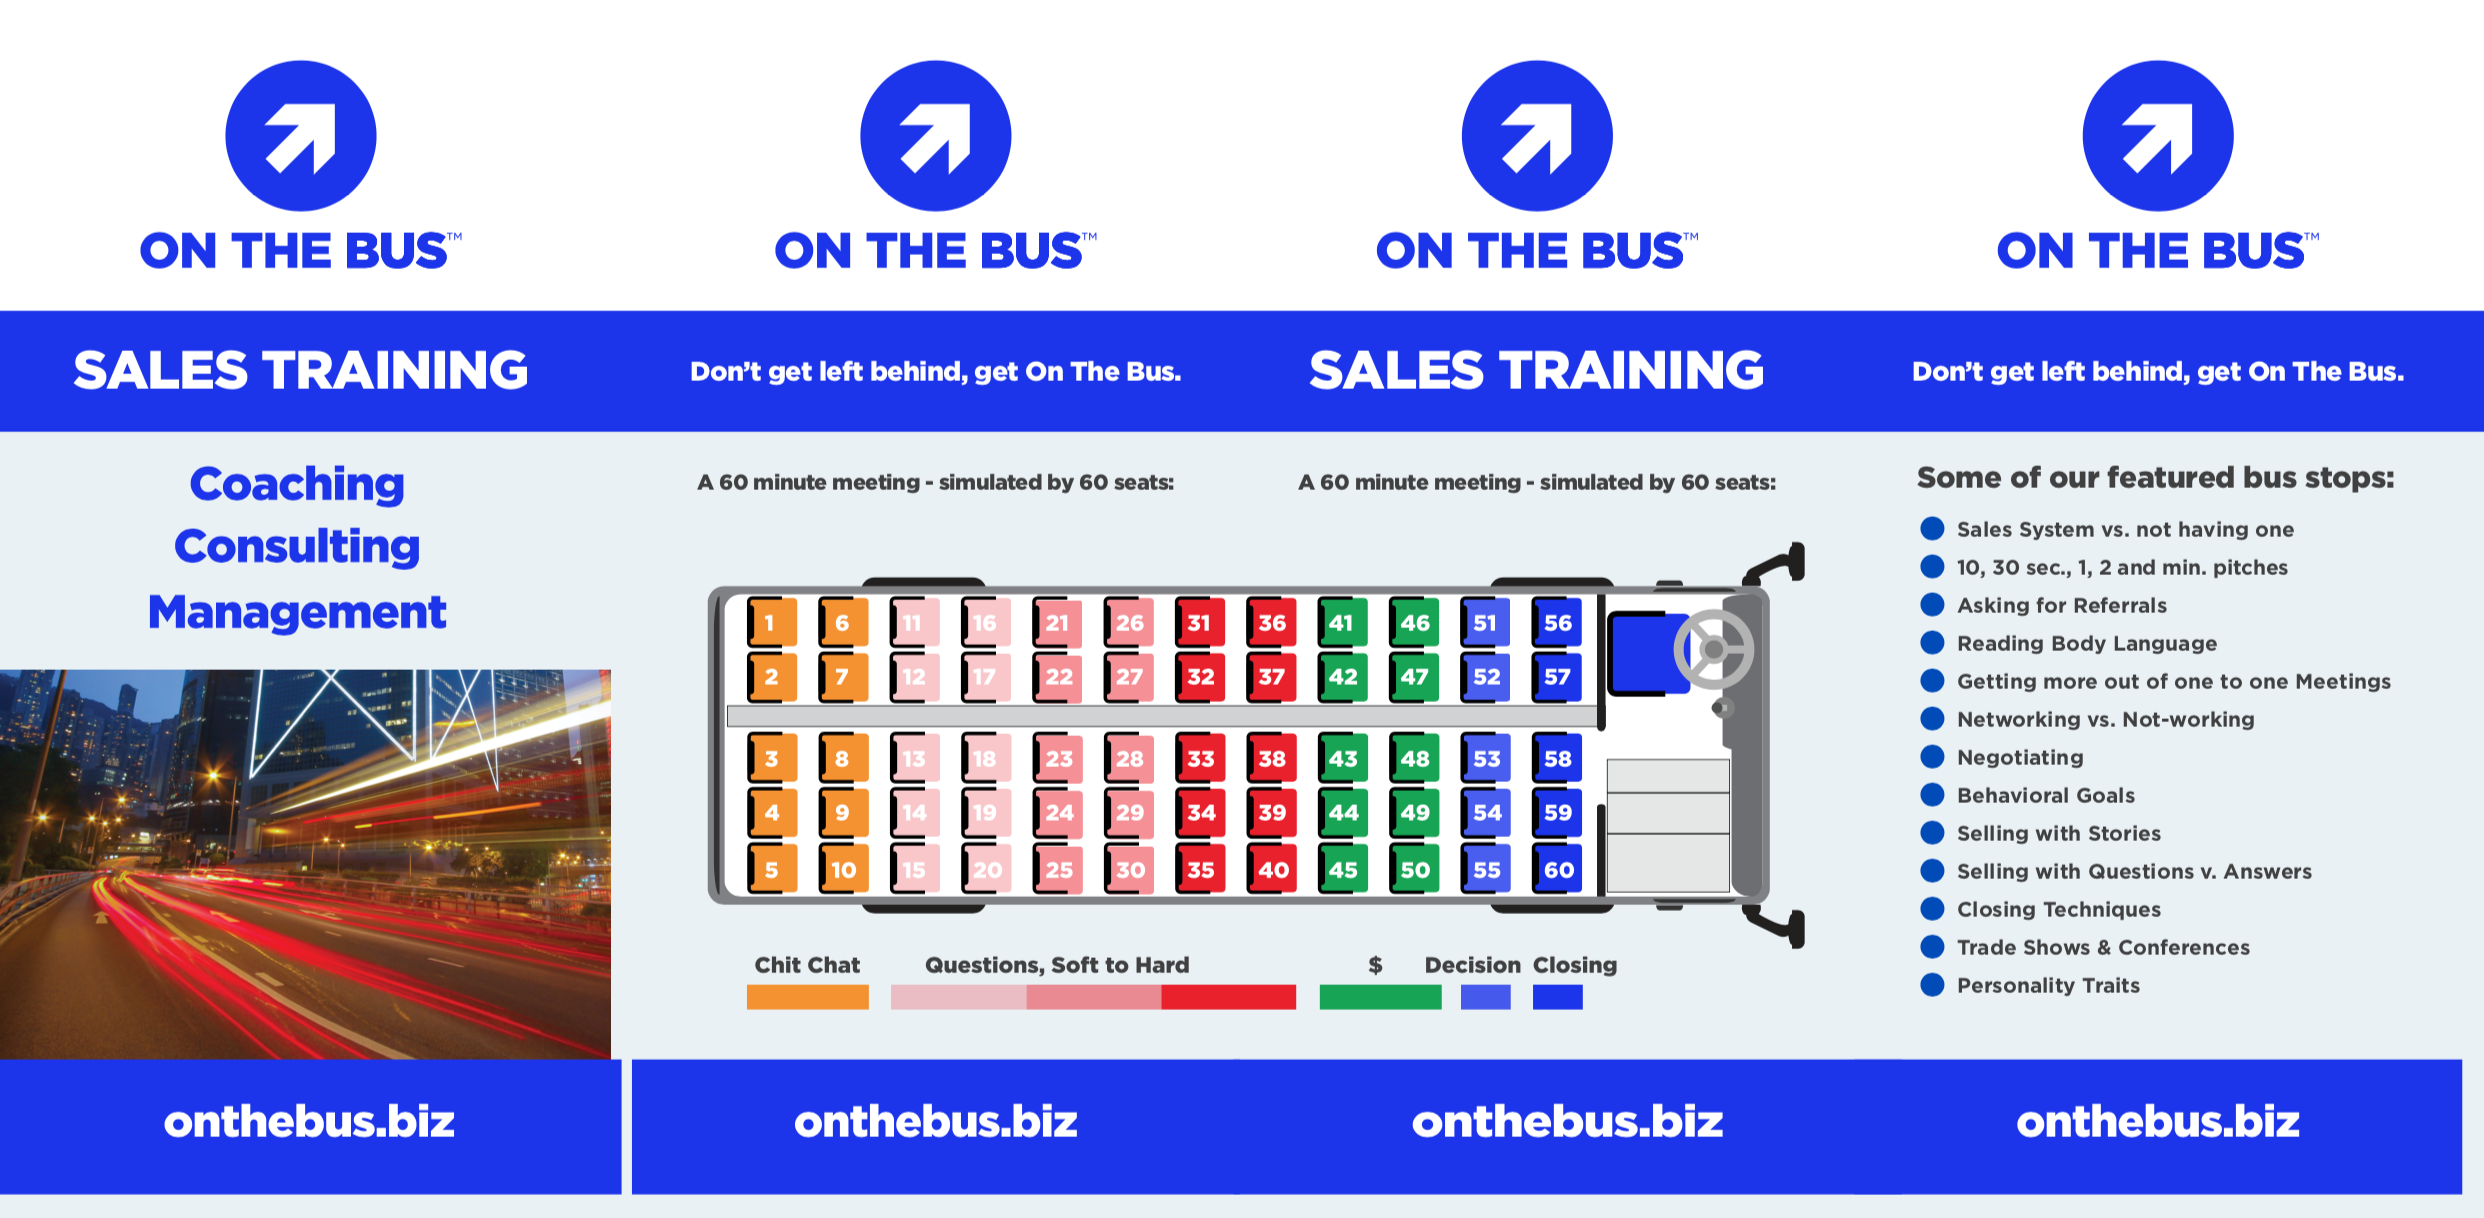 *Click to enlarge and see some of the featured bus stops!